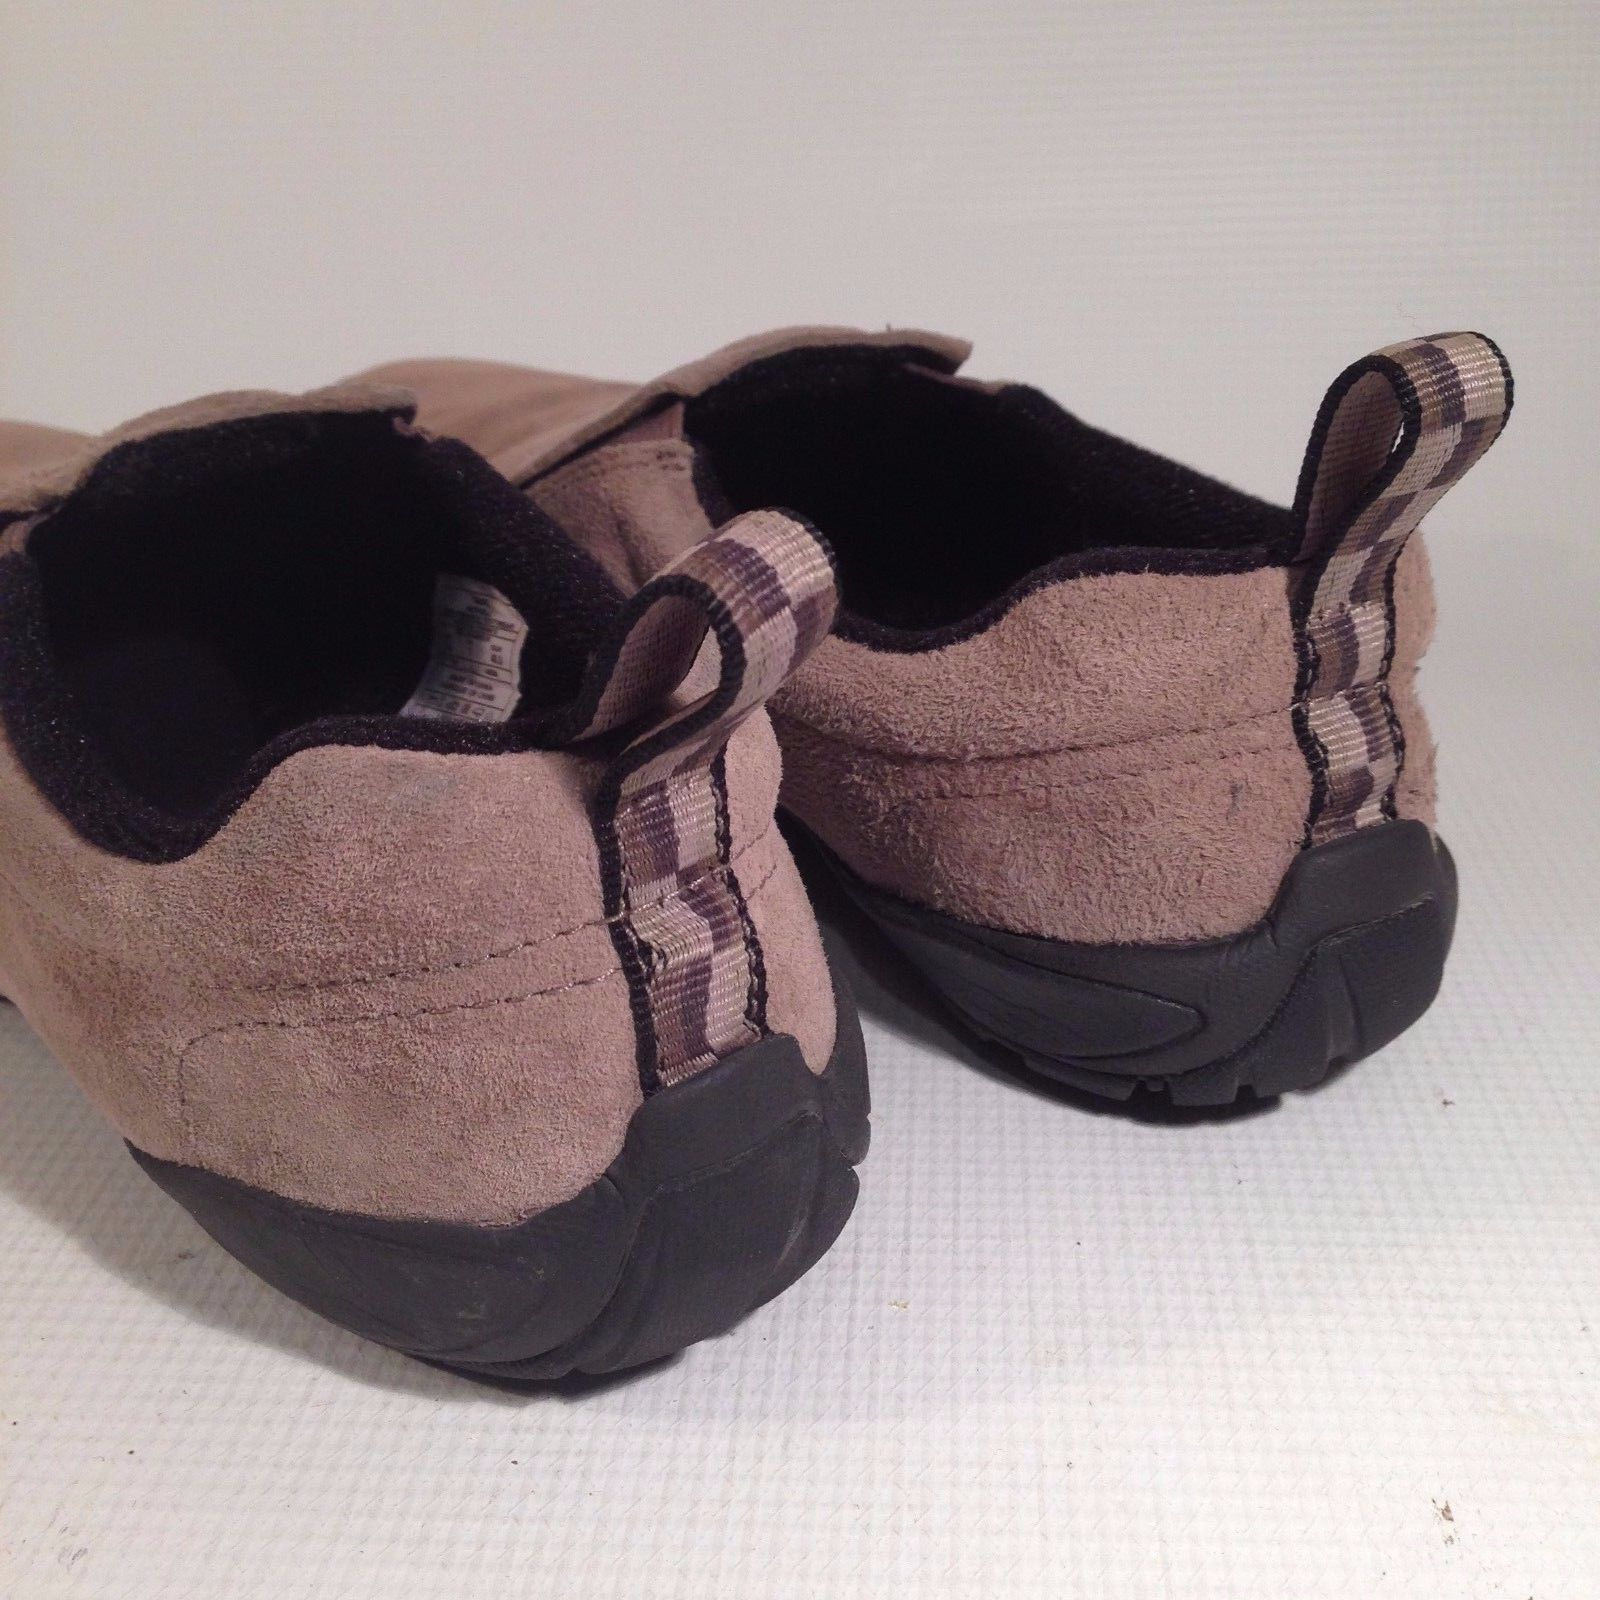 MERRELL PERFORMANCE OXFORDS SZ 7M Women's Walking Shoes Suede 1300917